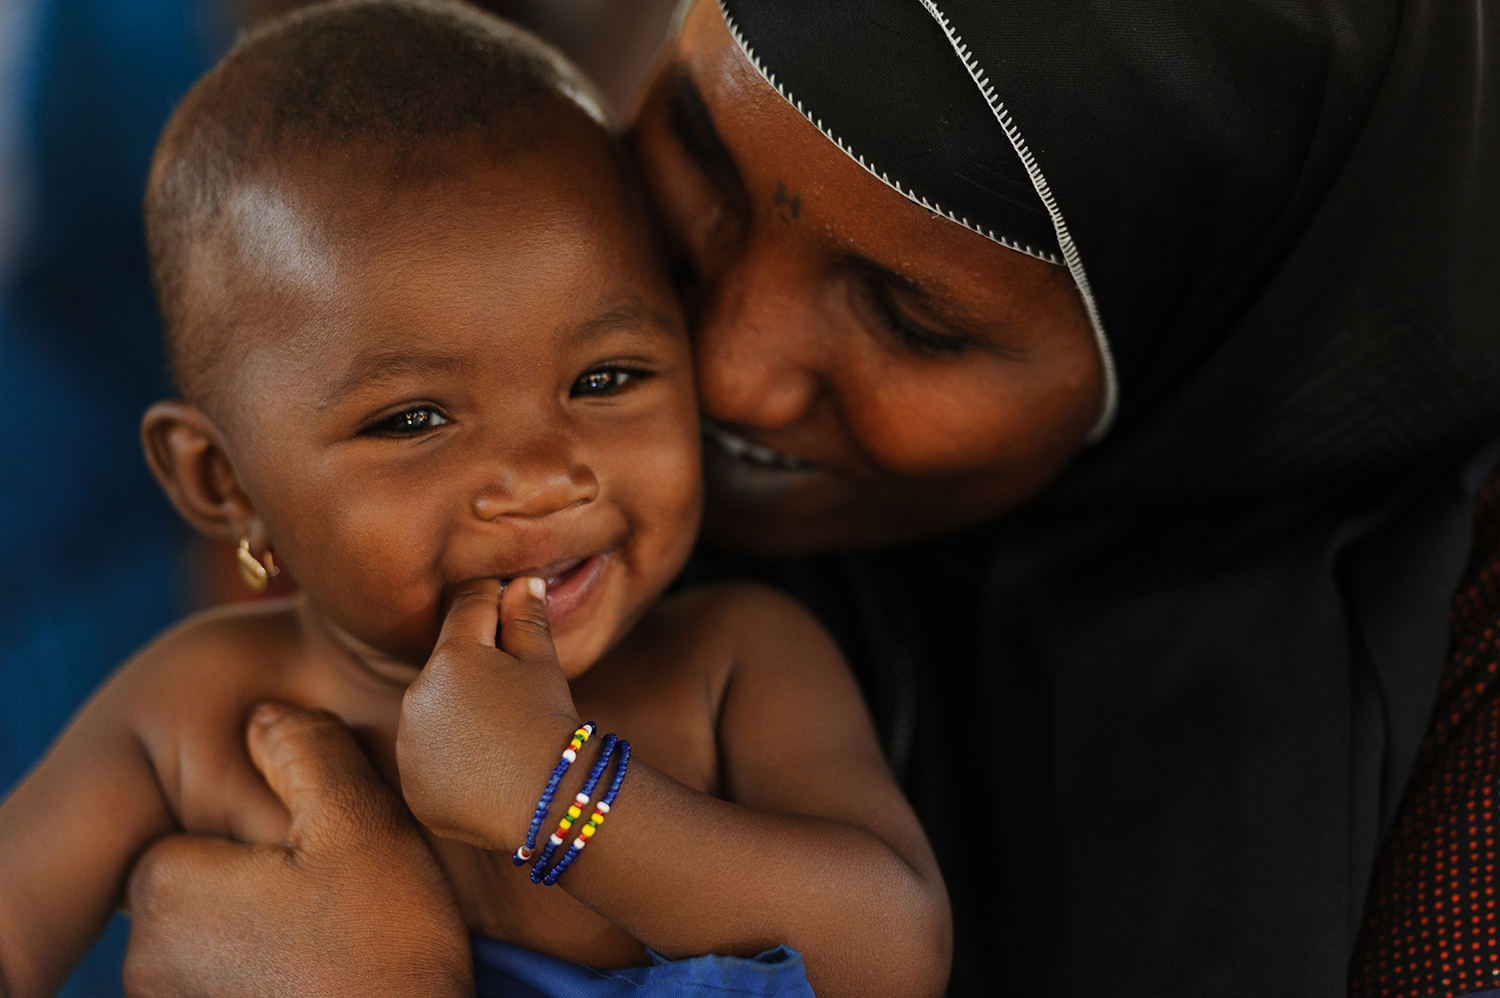 Six-month-old Maniratou Mahamadou, held by her mother, Habsatou Salou, smiles after a nutrition screening at the Boukoki Integrated Health Centre in Niamey, the capital of Niger.